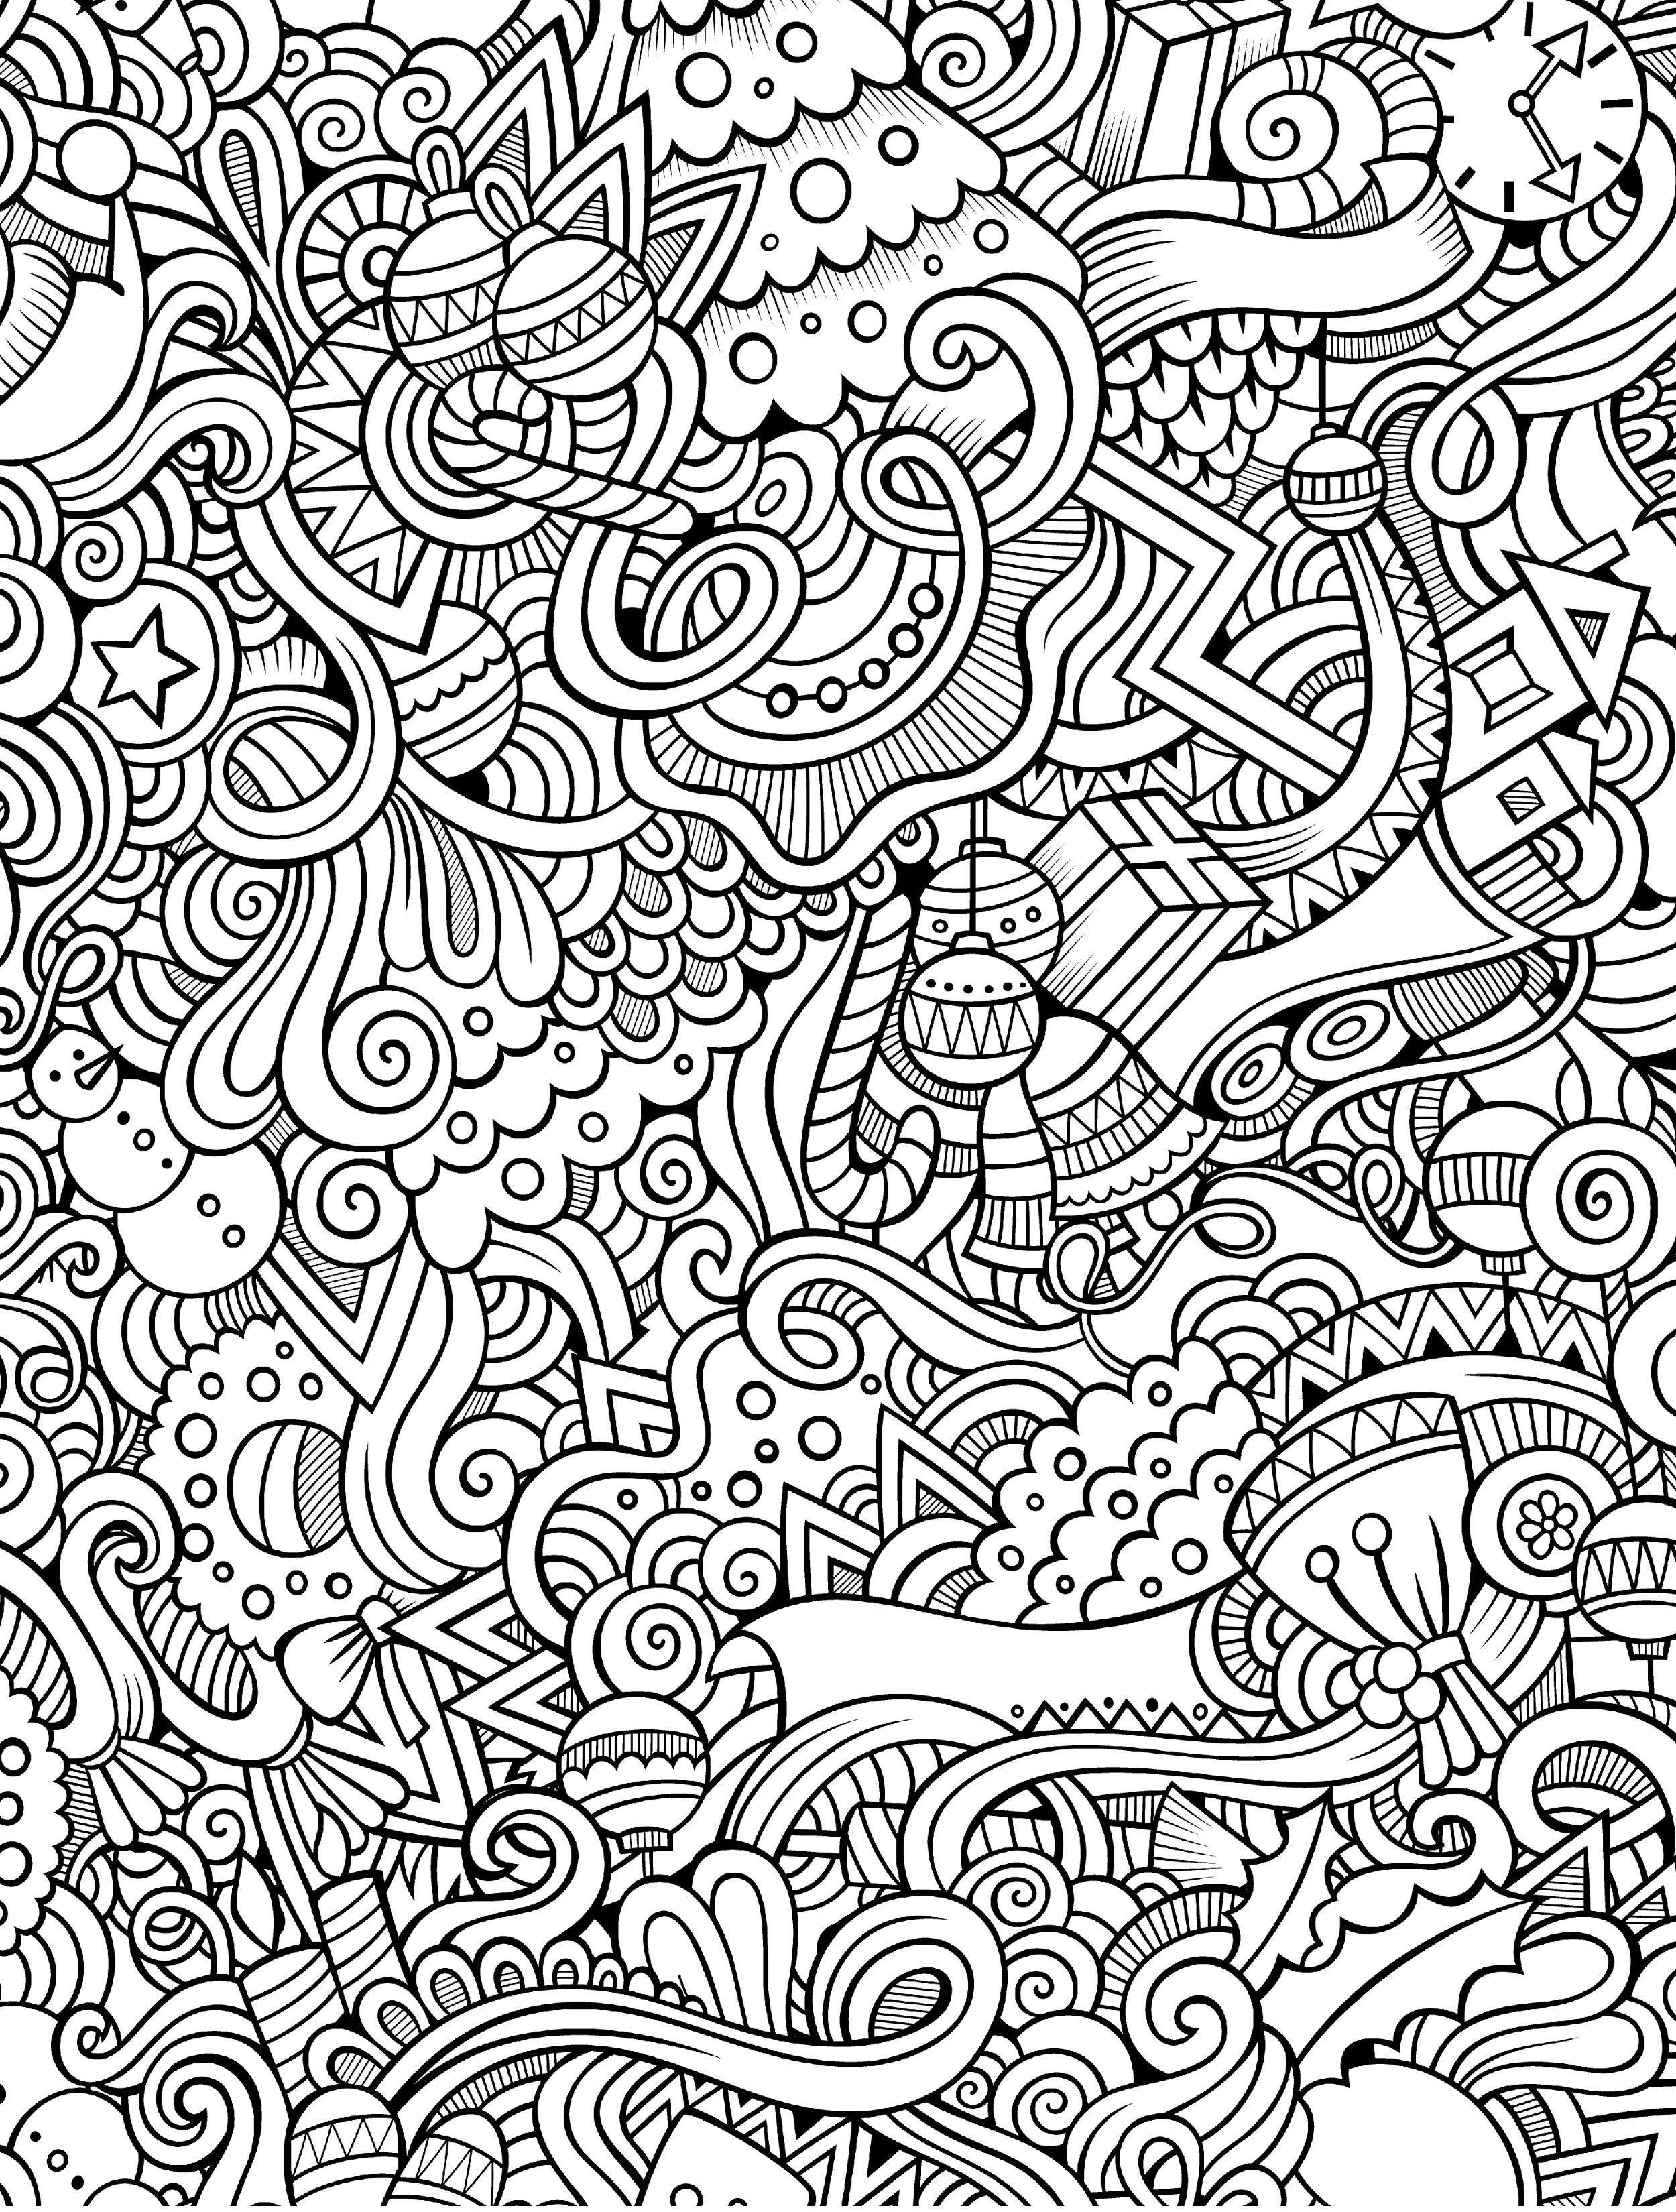 10 Free Printable Holiday Adult Coloring Pages | Coloring Pages - Free Printable Doodle Patterns